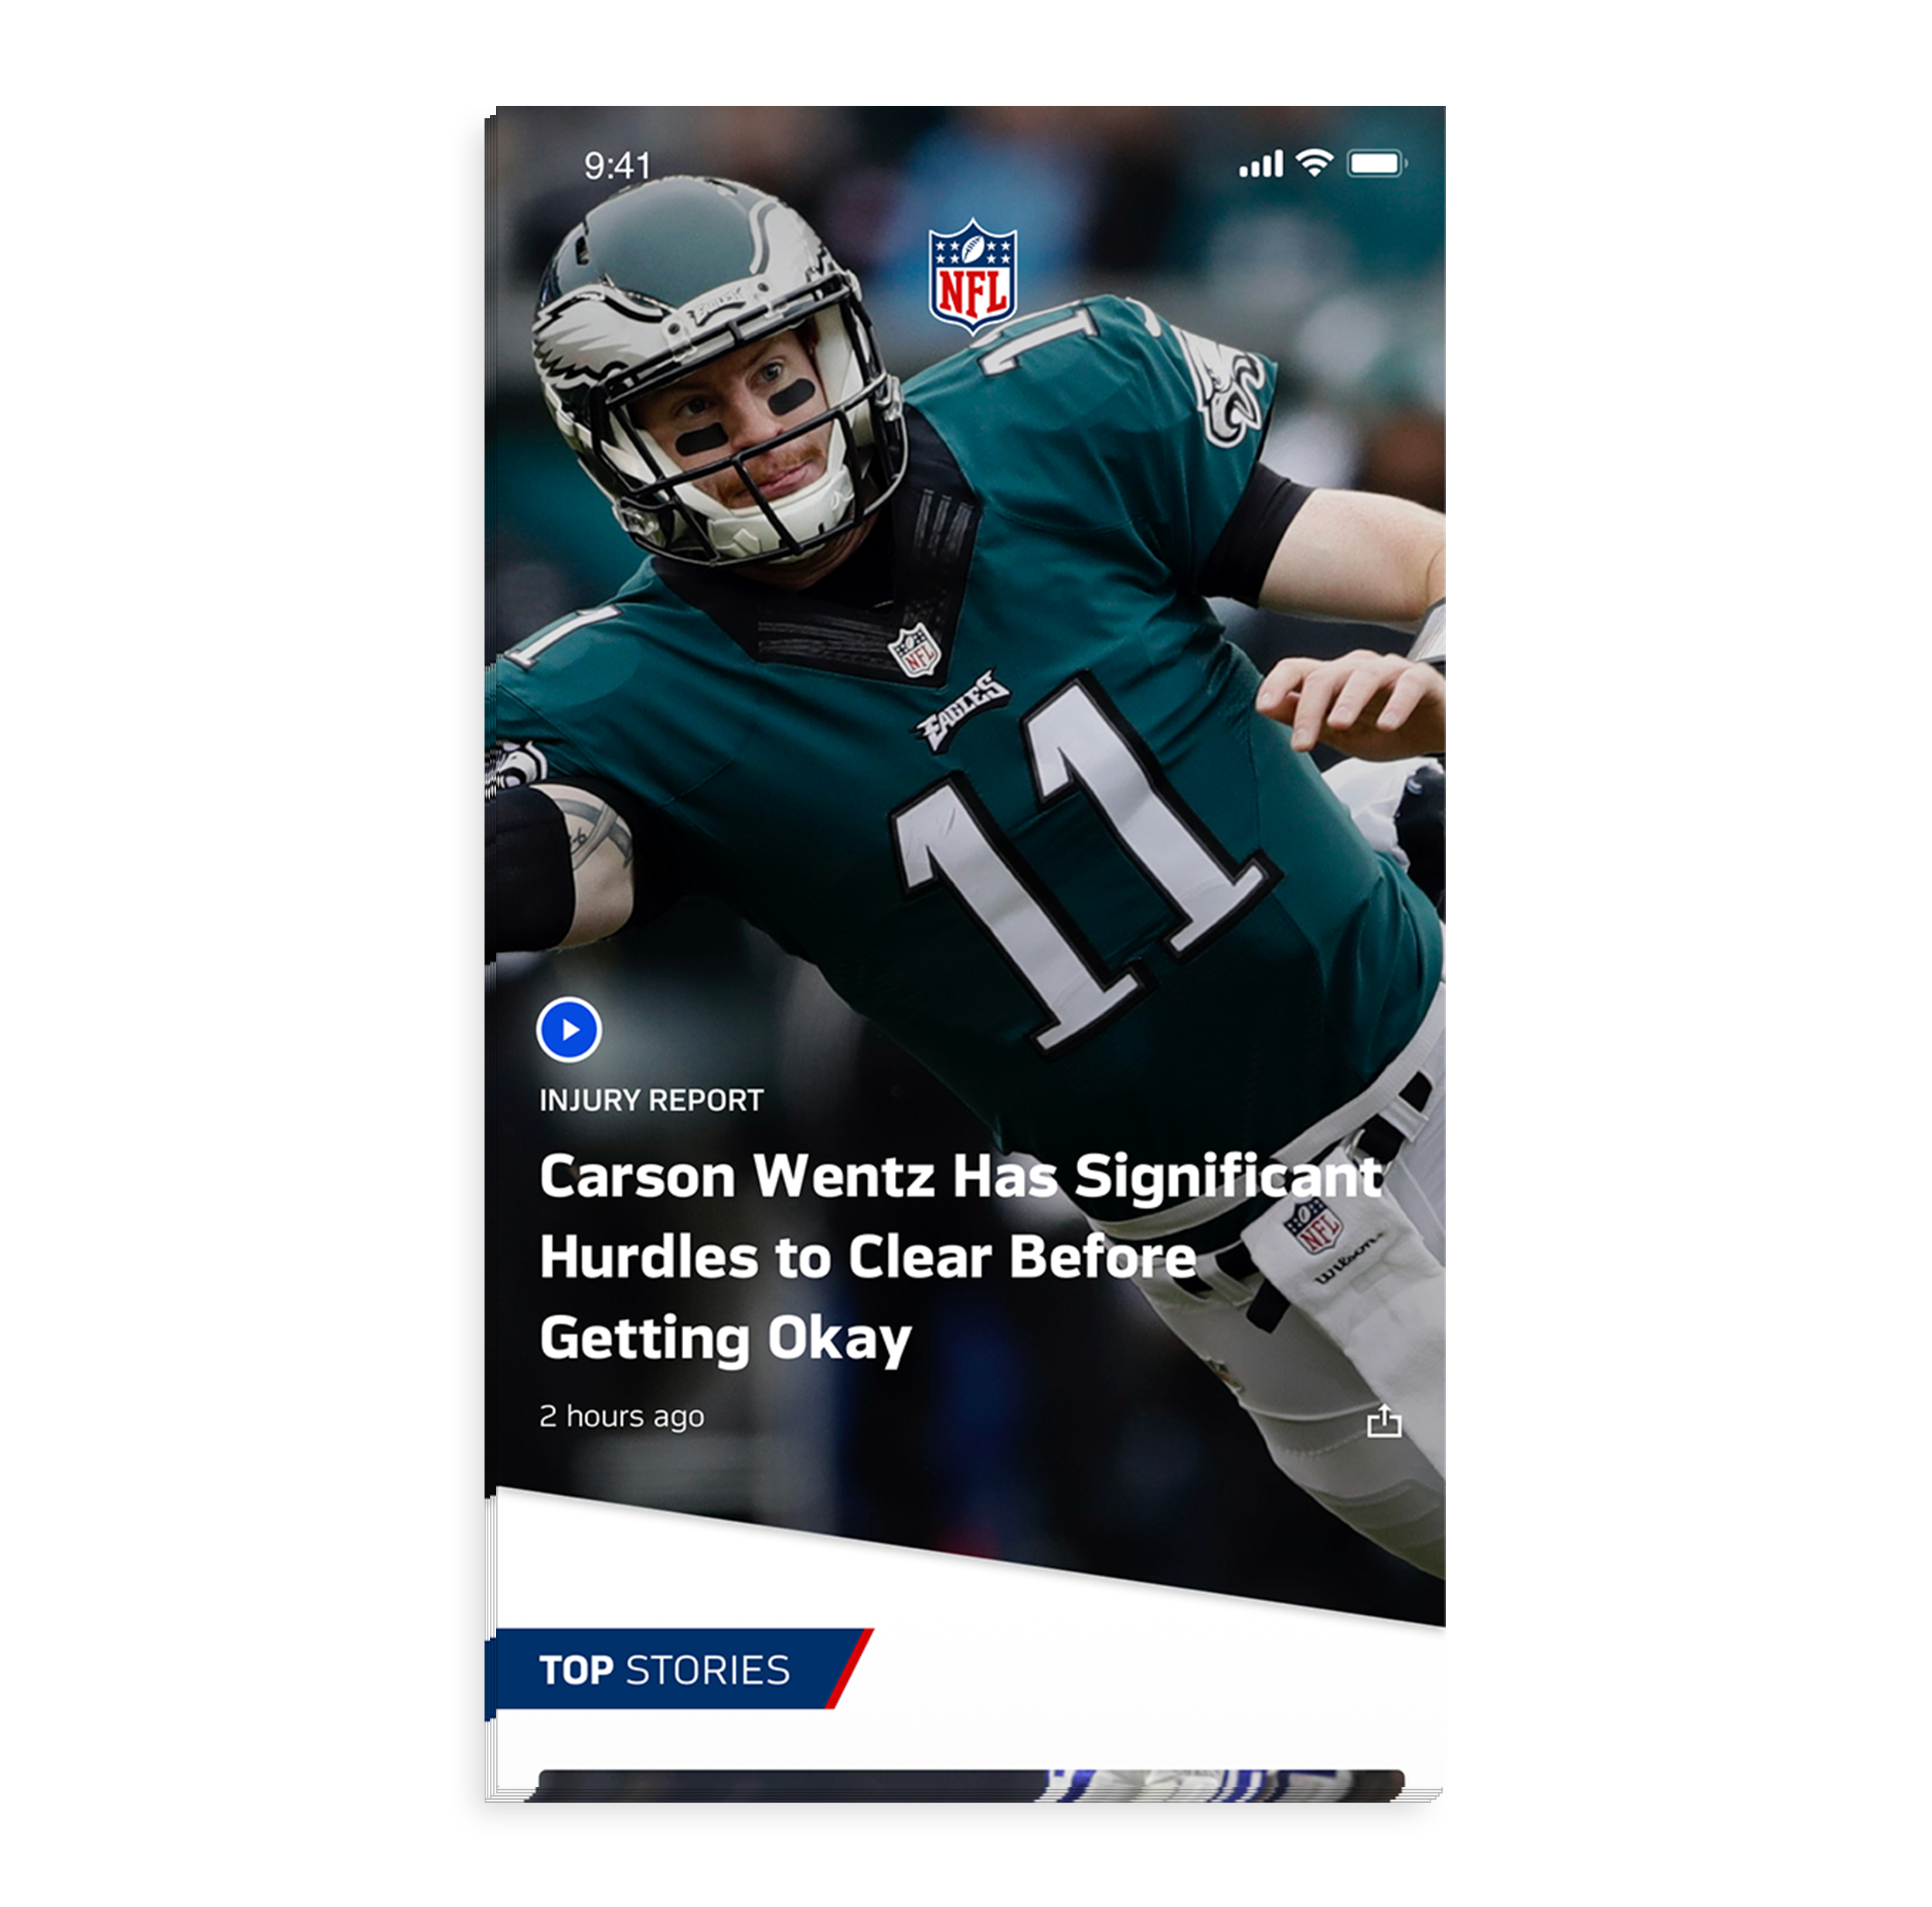 - Once users land on the News page of the NFL App, they are greeted with a large hero image featuring the top news around the league or breaking news about a team or player.